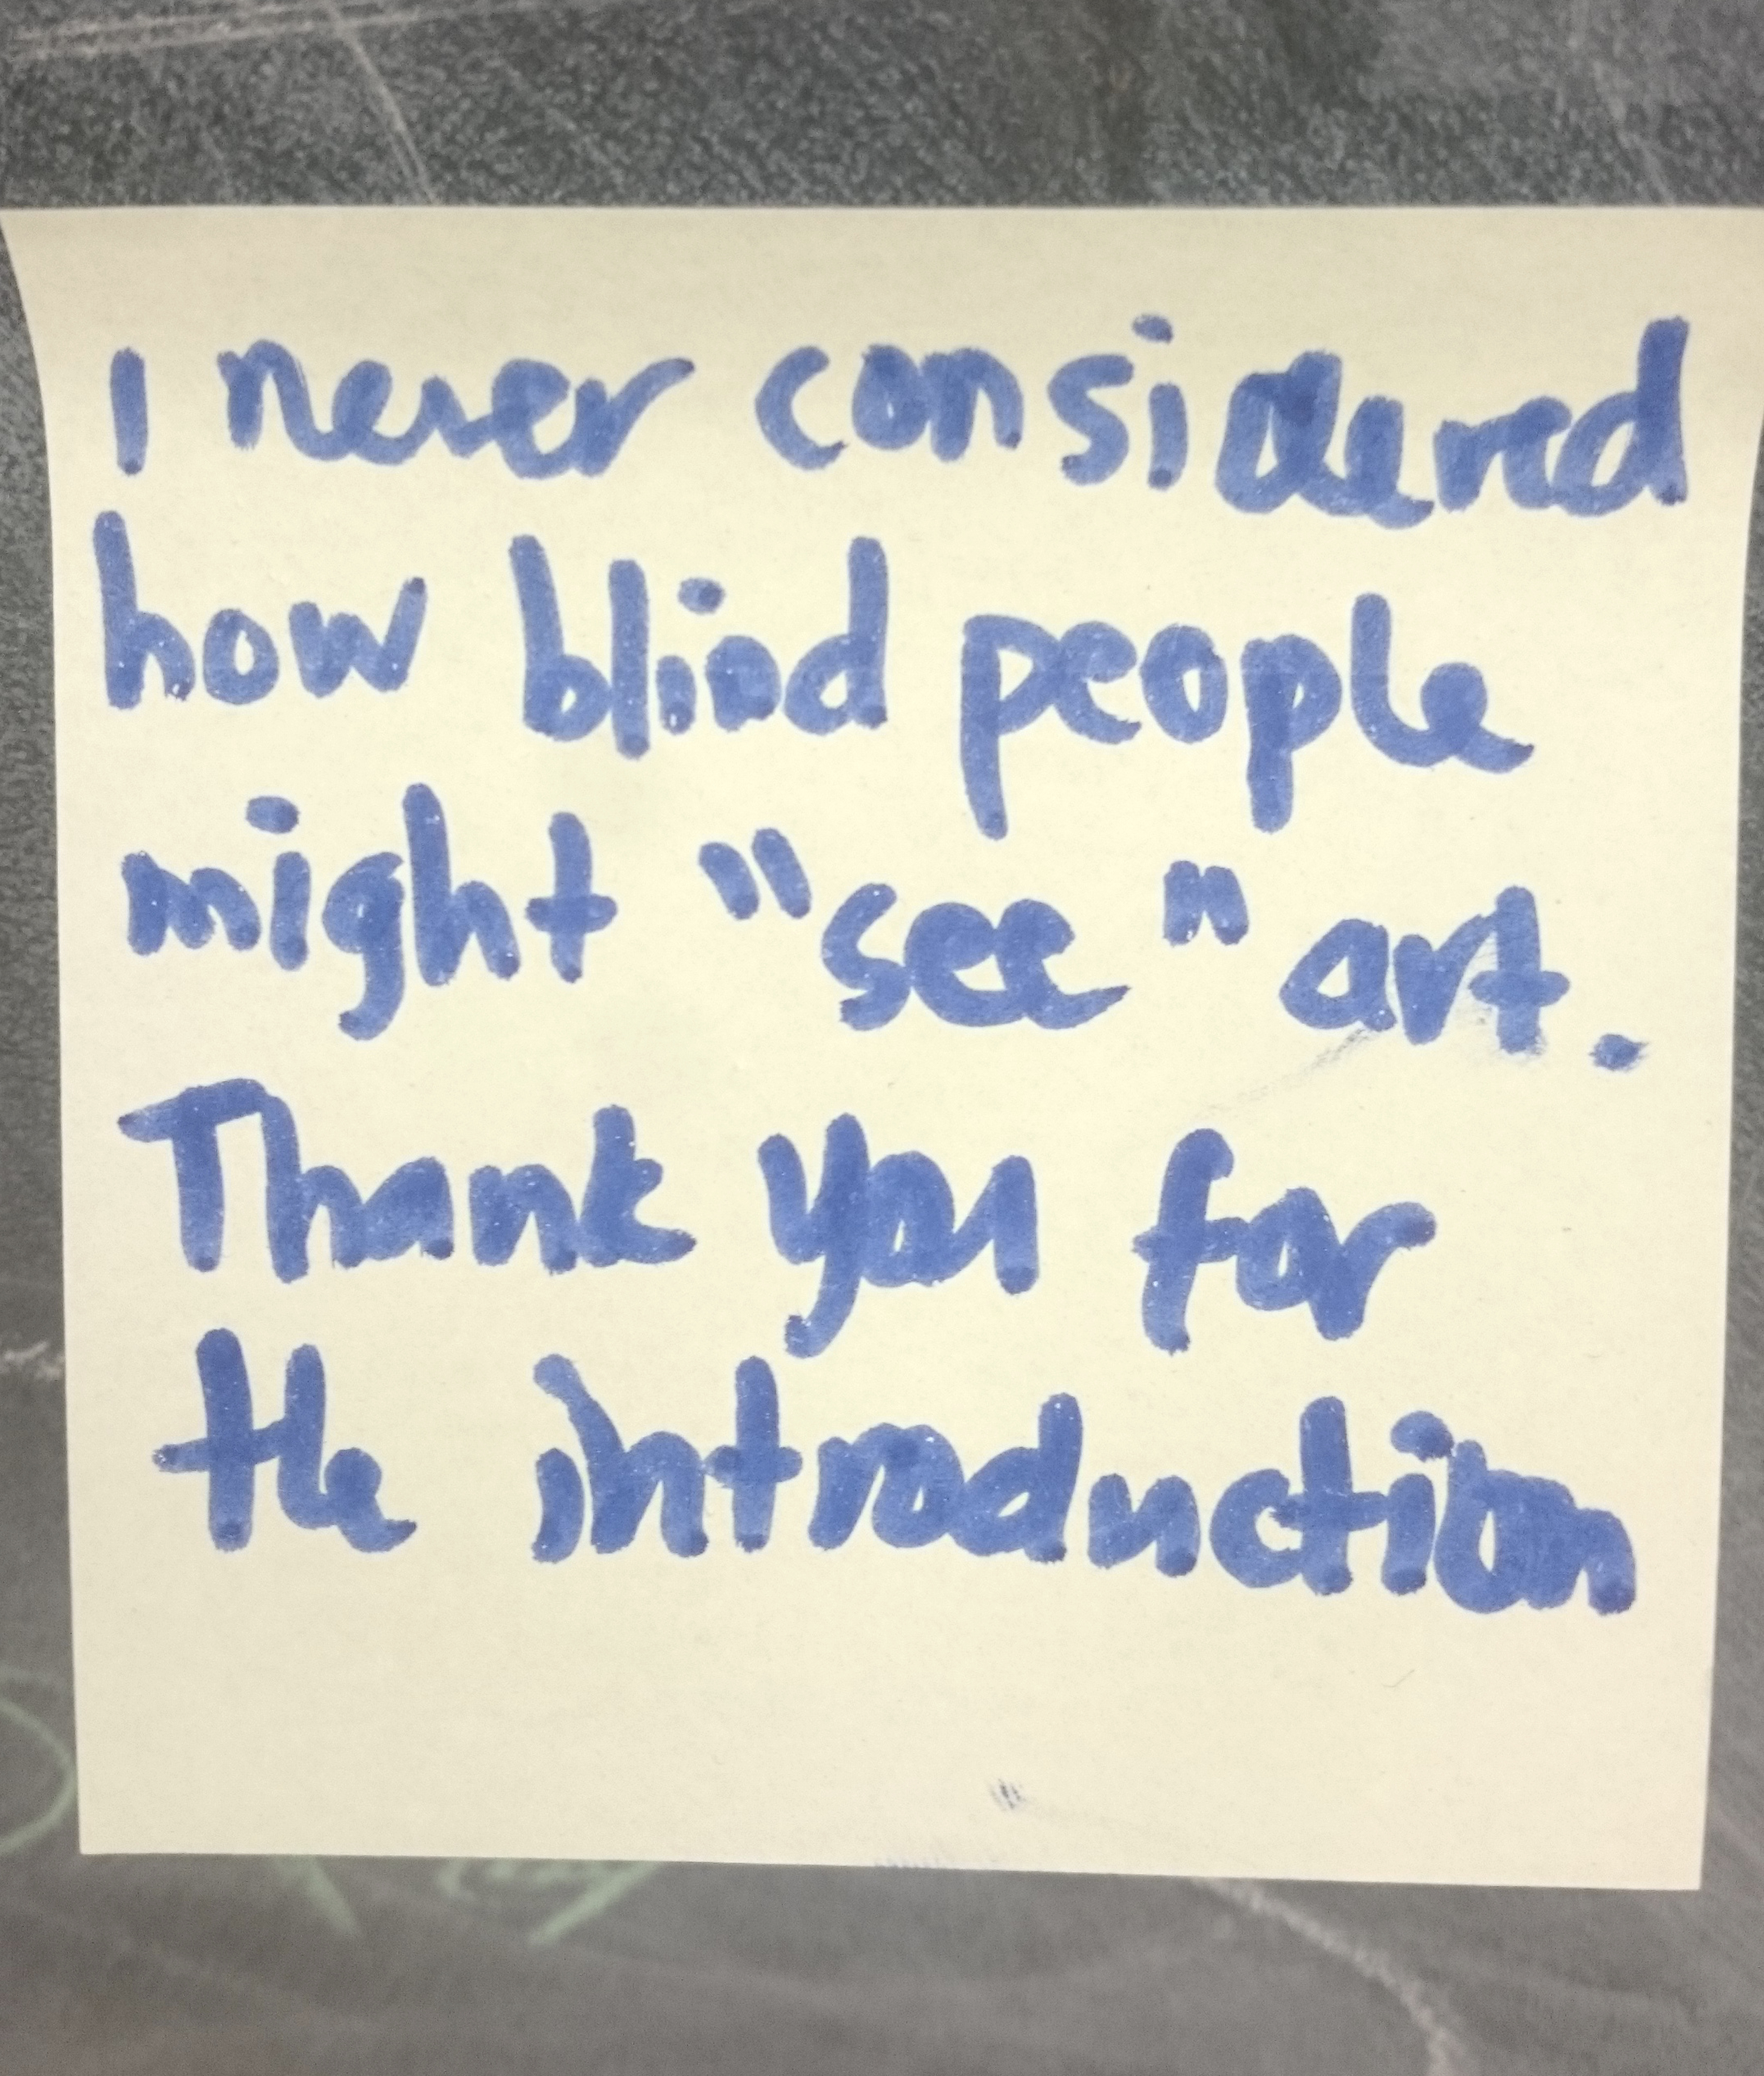 A post it note reads: I never considered how blind people see art; thank you for the introduction